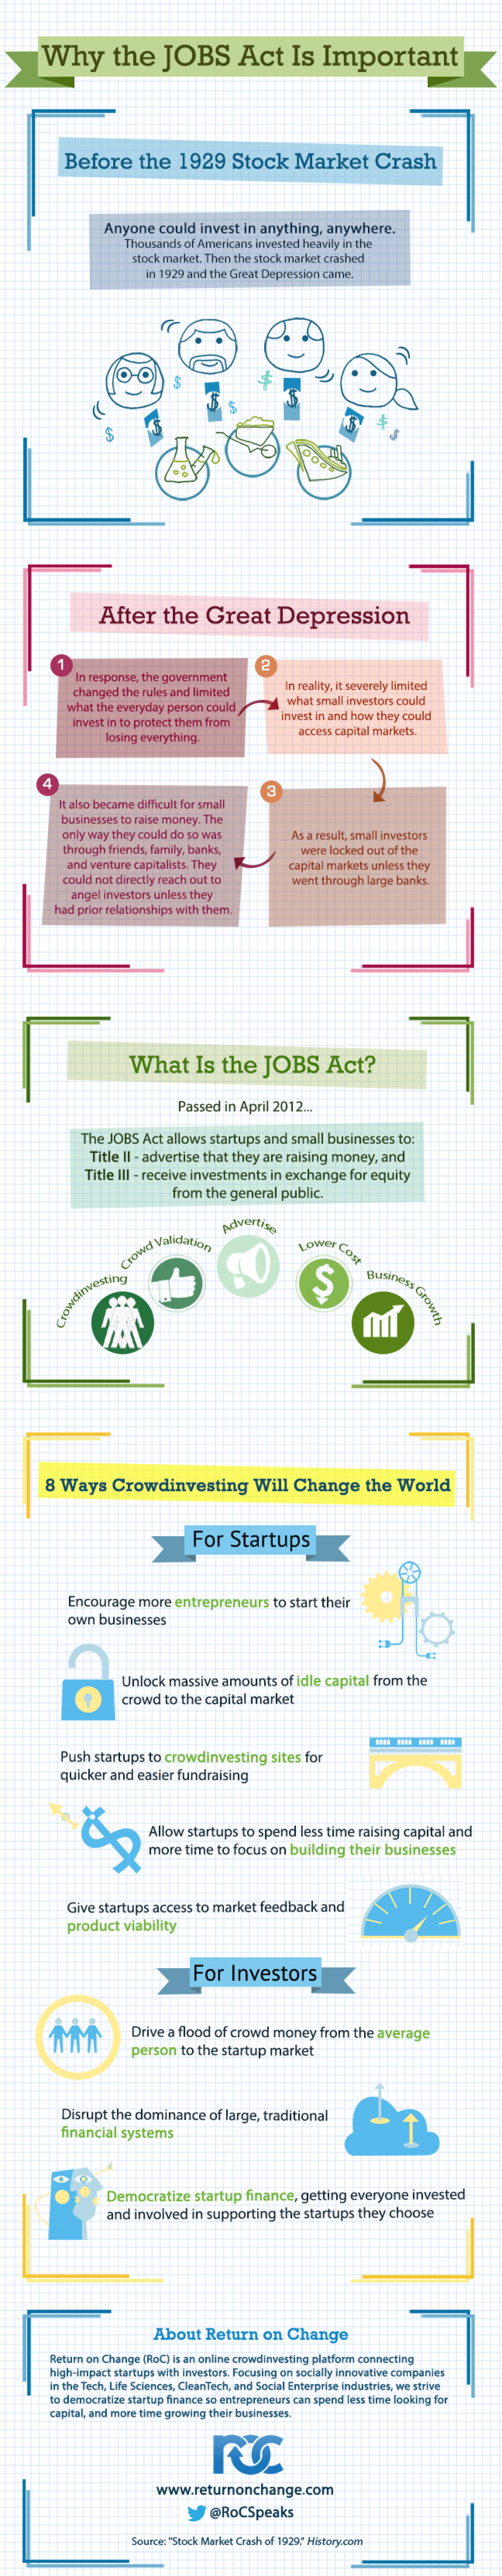 Why the JOBS Act Is Important Infographic